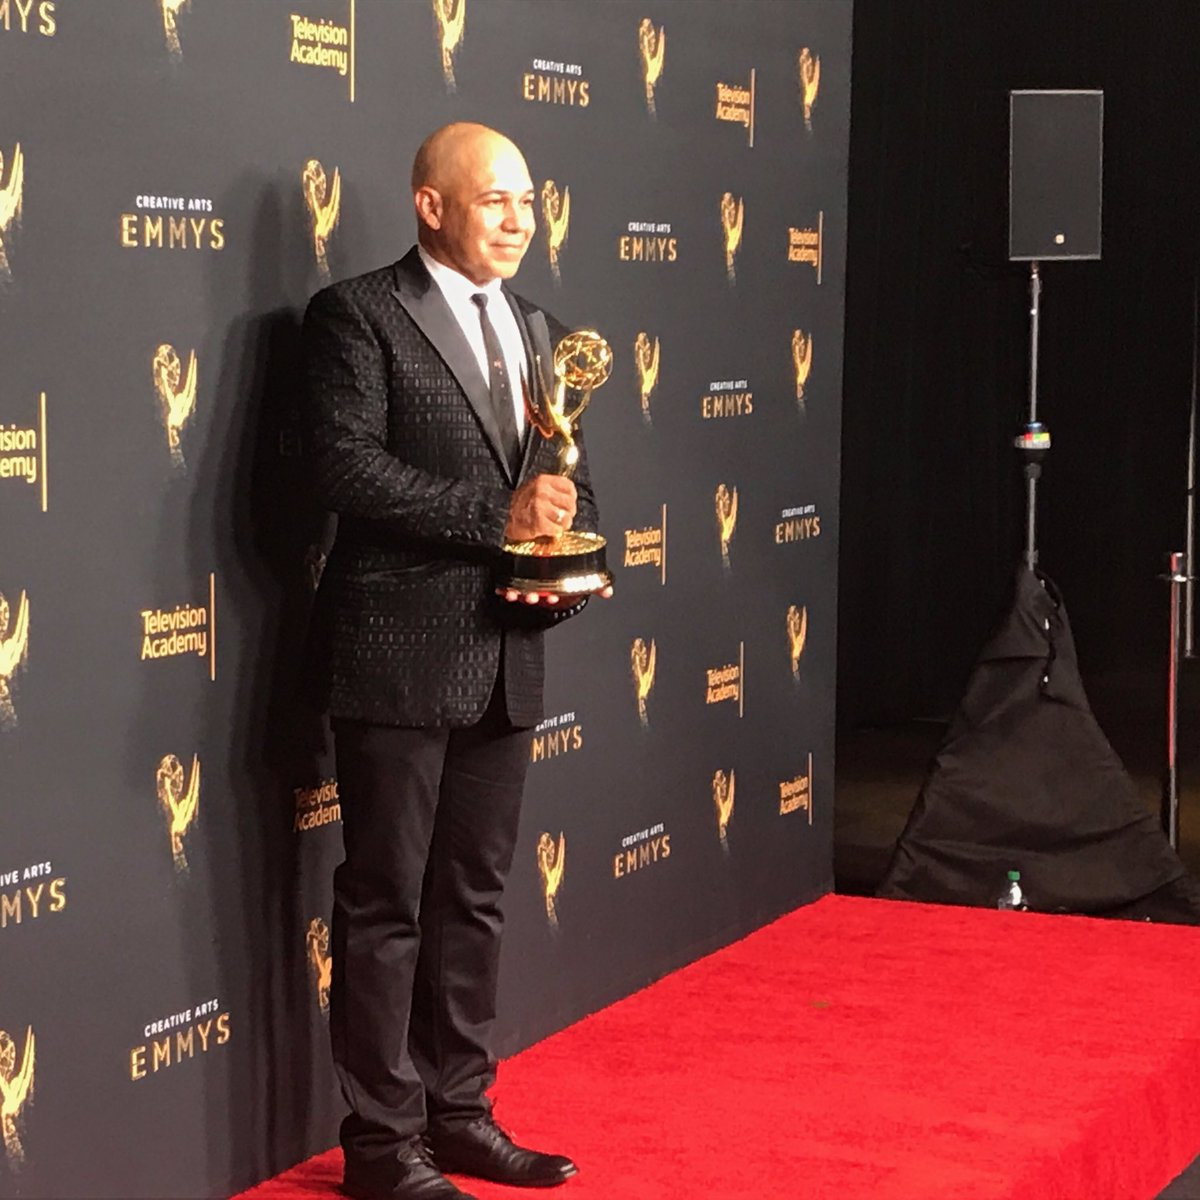 RT @SHO_Shameless: Congrats to #Shameless stunt coordinator @iameddieperez on his repeat win! ???? #EmmyArts https://t.co/G6NR7NSup6